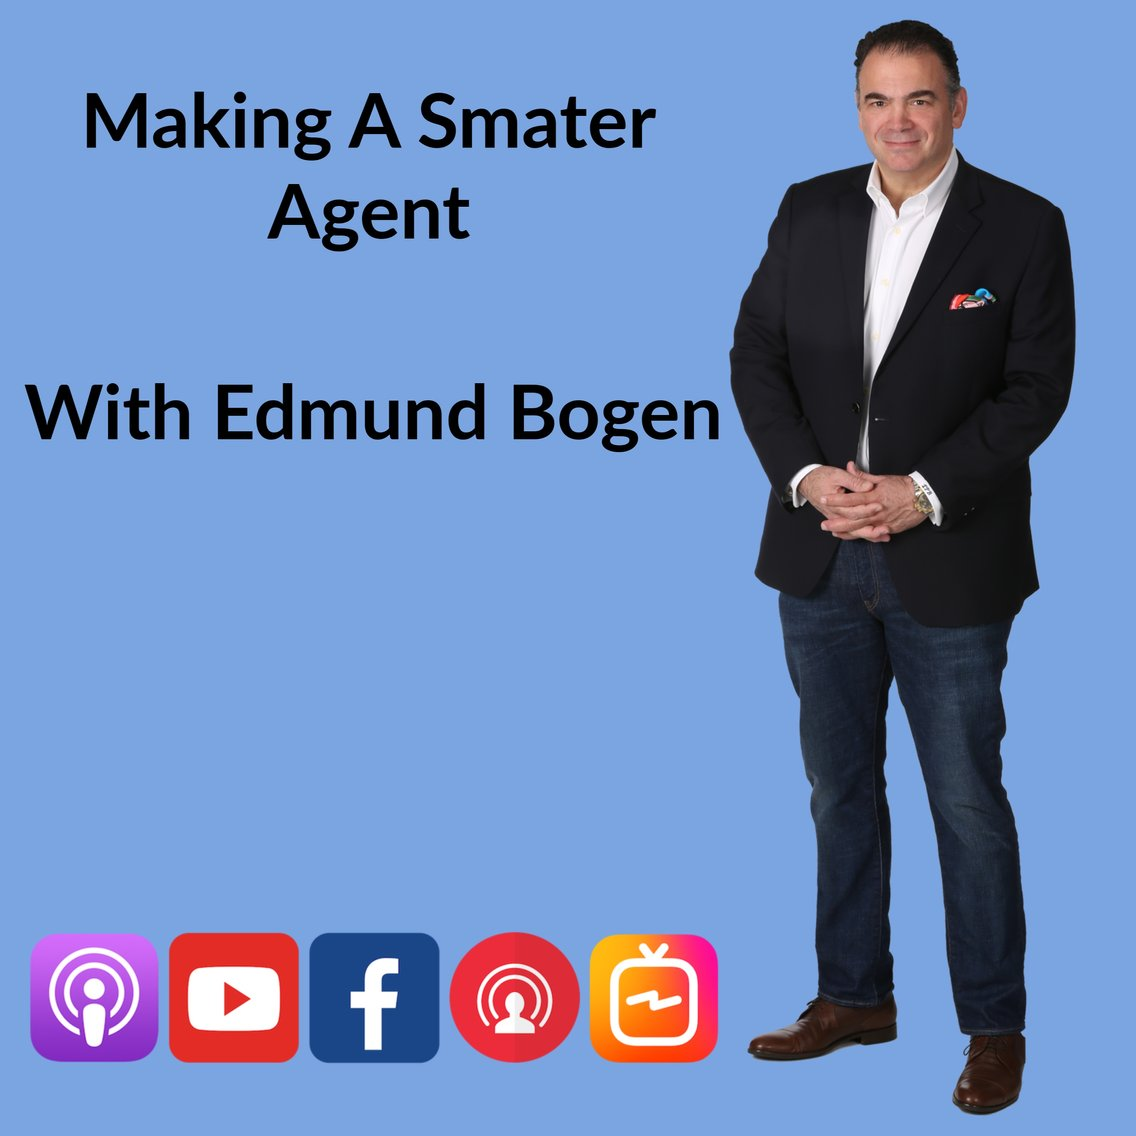 Making A Smarter Agent - Cover Image